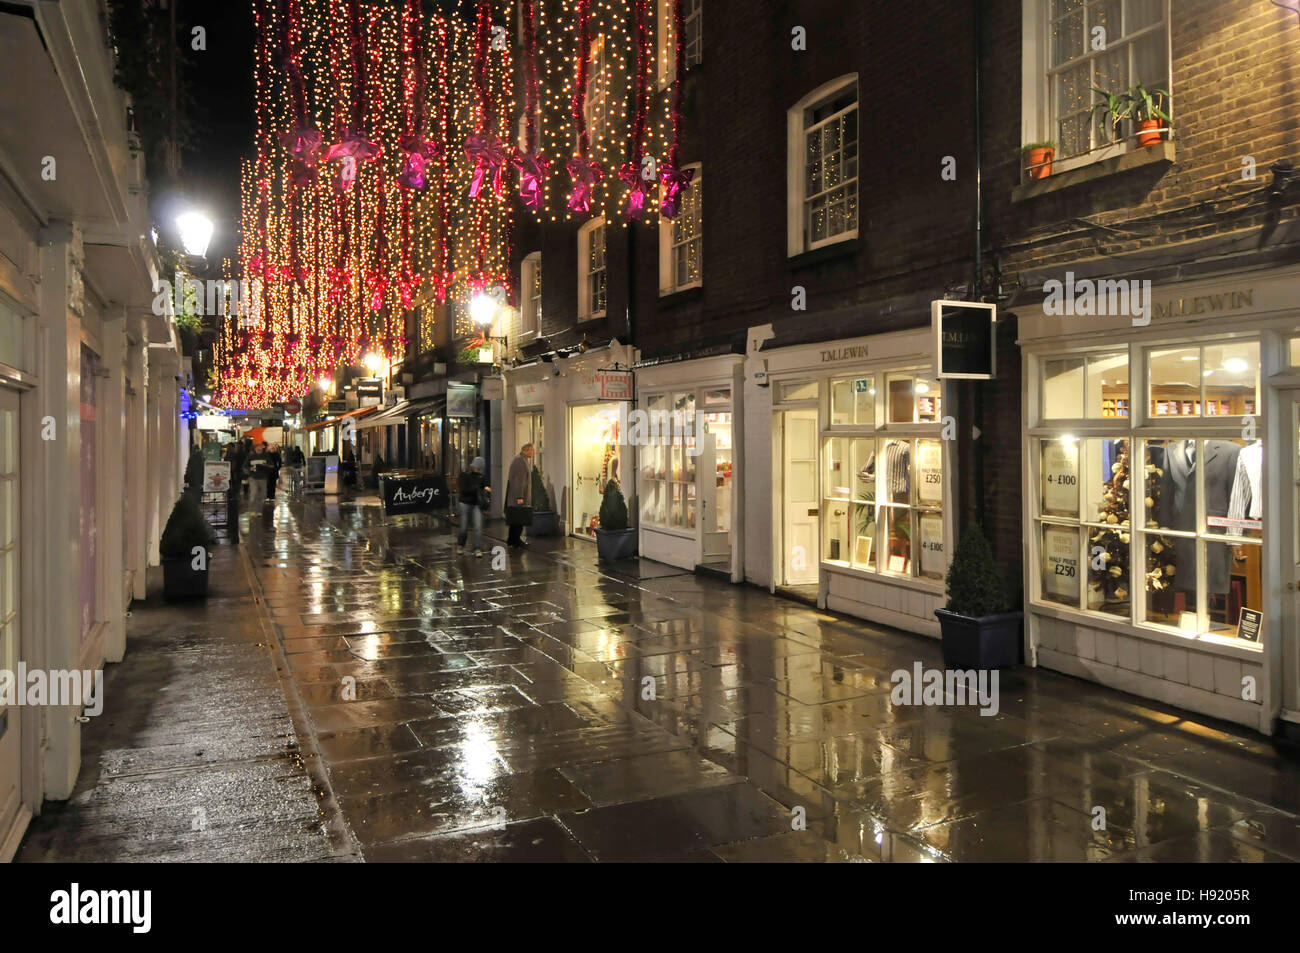 Christmas decorations lights London West End shopping eat out area with little upmarket shops St Christophers Place - Stock Image